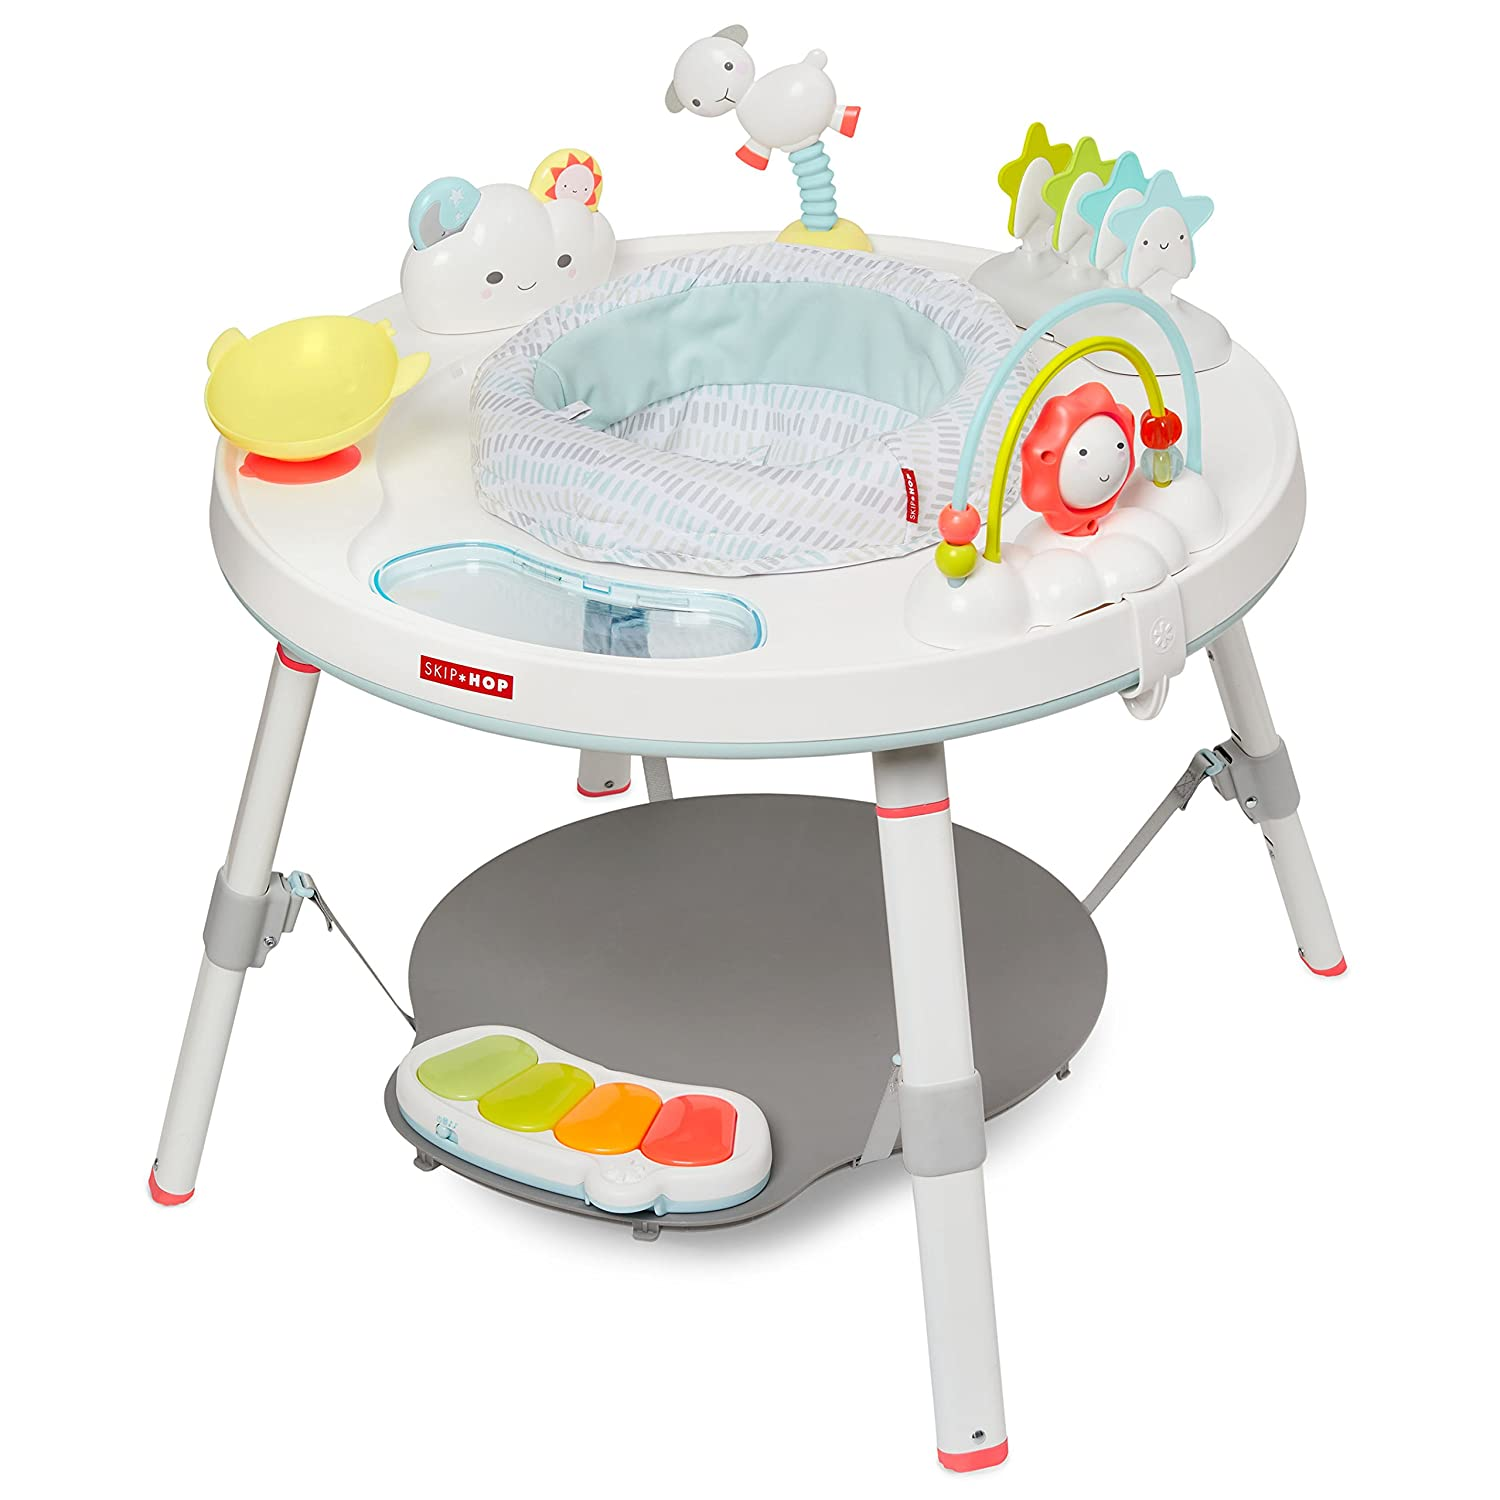 Skip Hop Silver Lining Cloud Baby's View 3-stage Interactive Activity Center, Multi-color, 4 Month Image